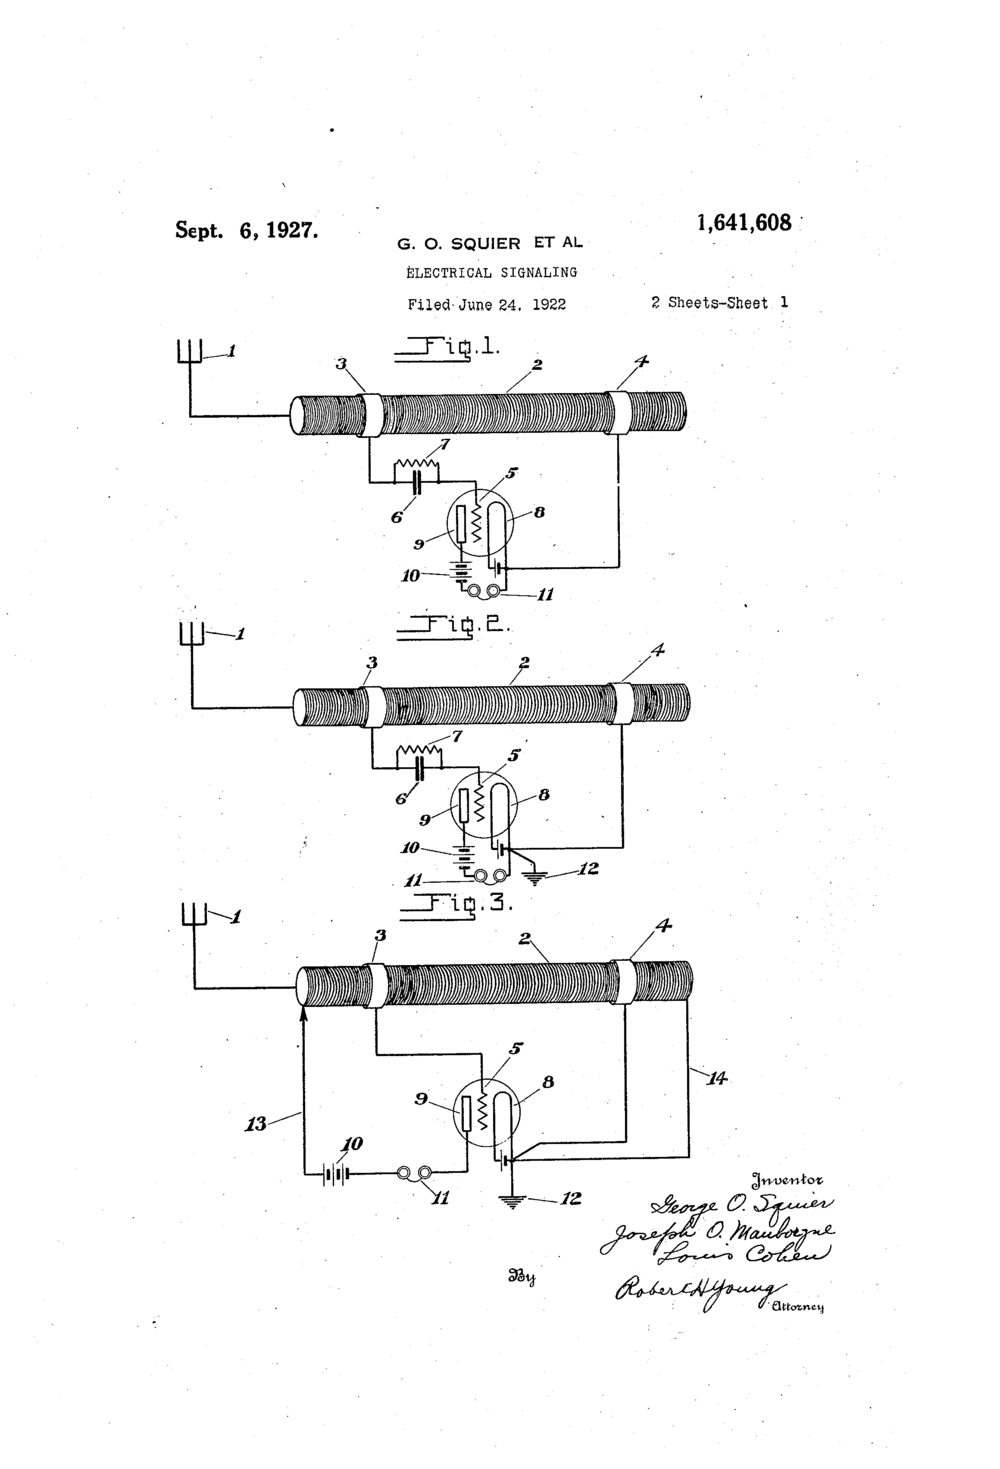 Squier, George O., Joseph O. Mauborgne, and Louis Cohen.  Electrical Signaling Patent 1.641.648:   Sheet 1 of 2.  06 Sept. 1927.